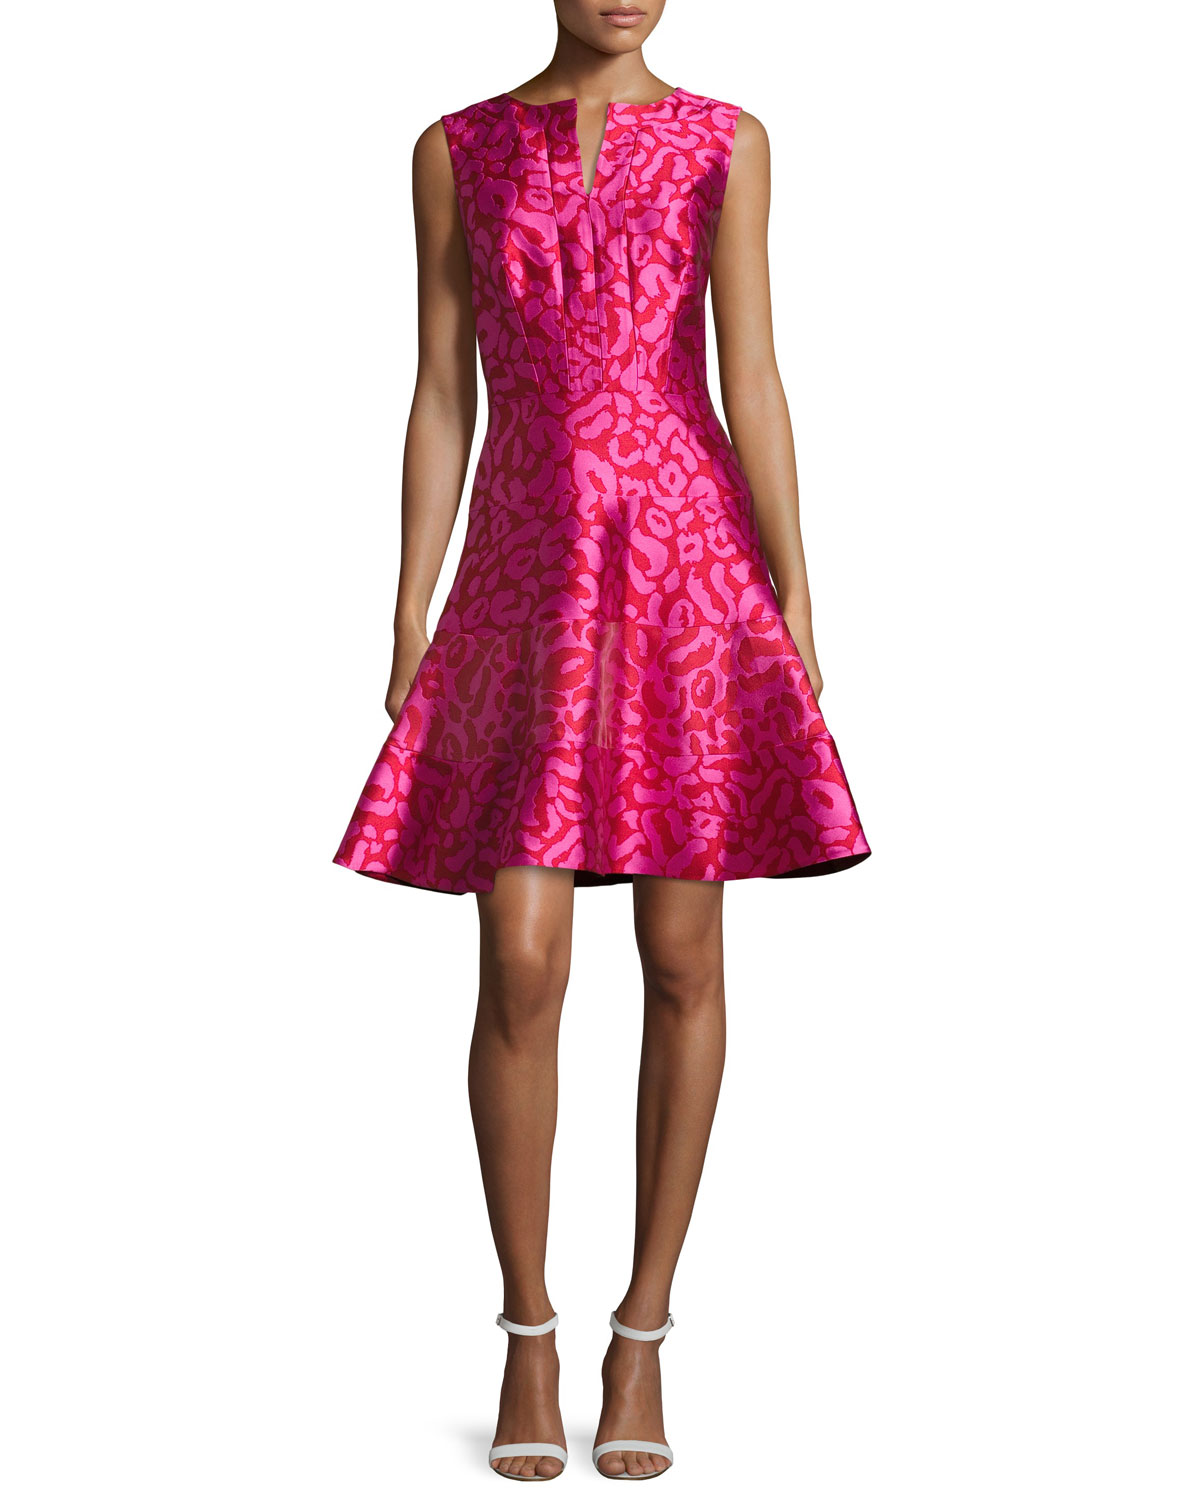 Leopard-Jacquard Fit-and-Flare Dress, Currant/Hot Pink